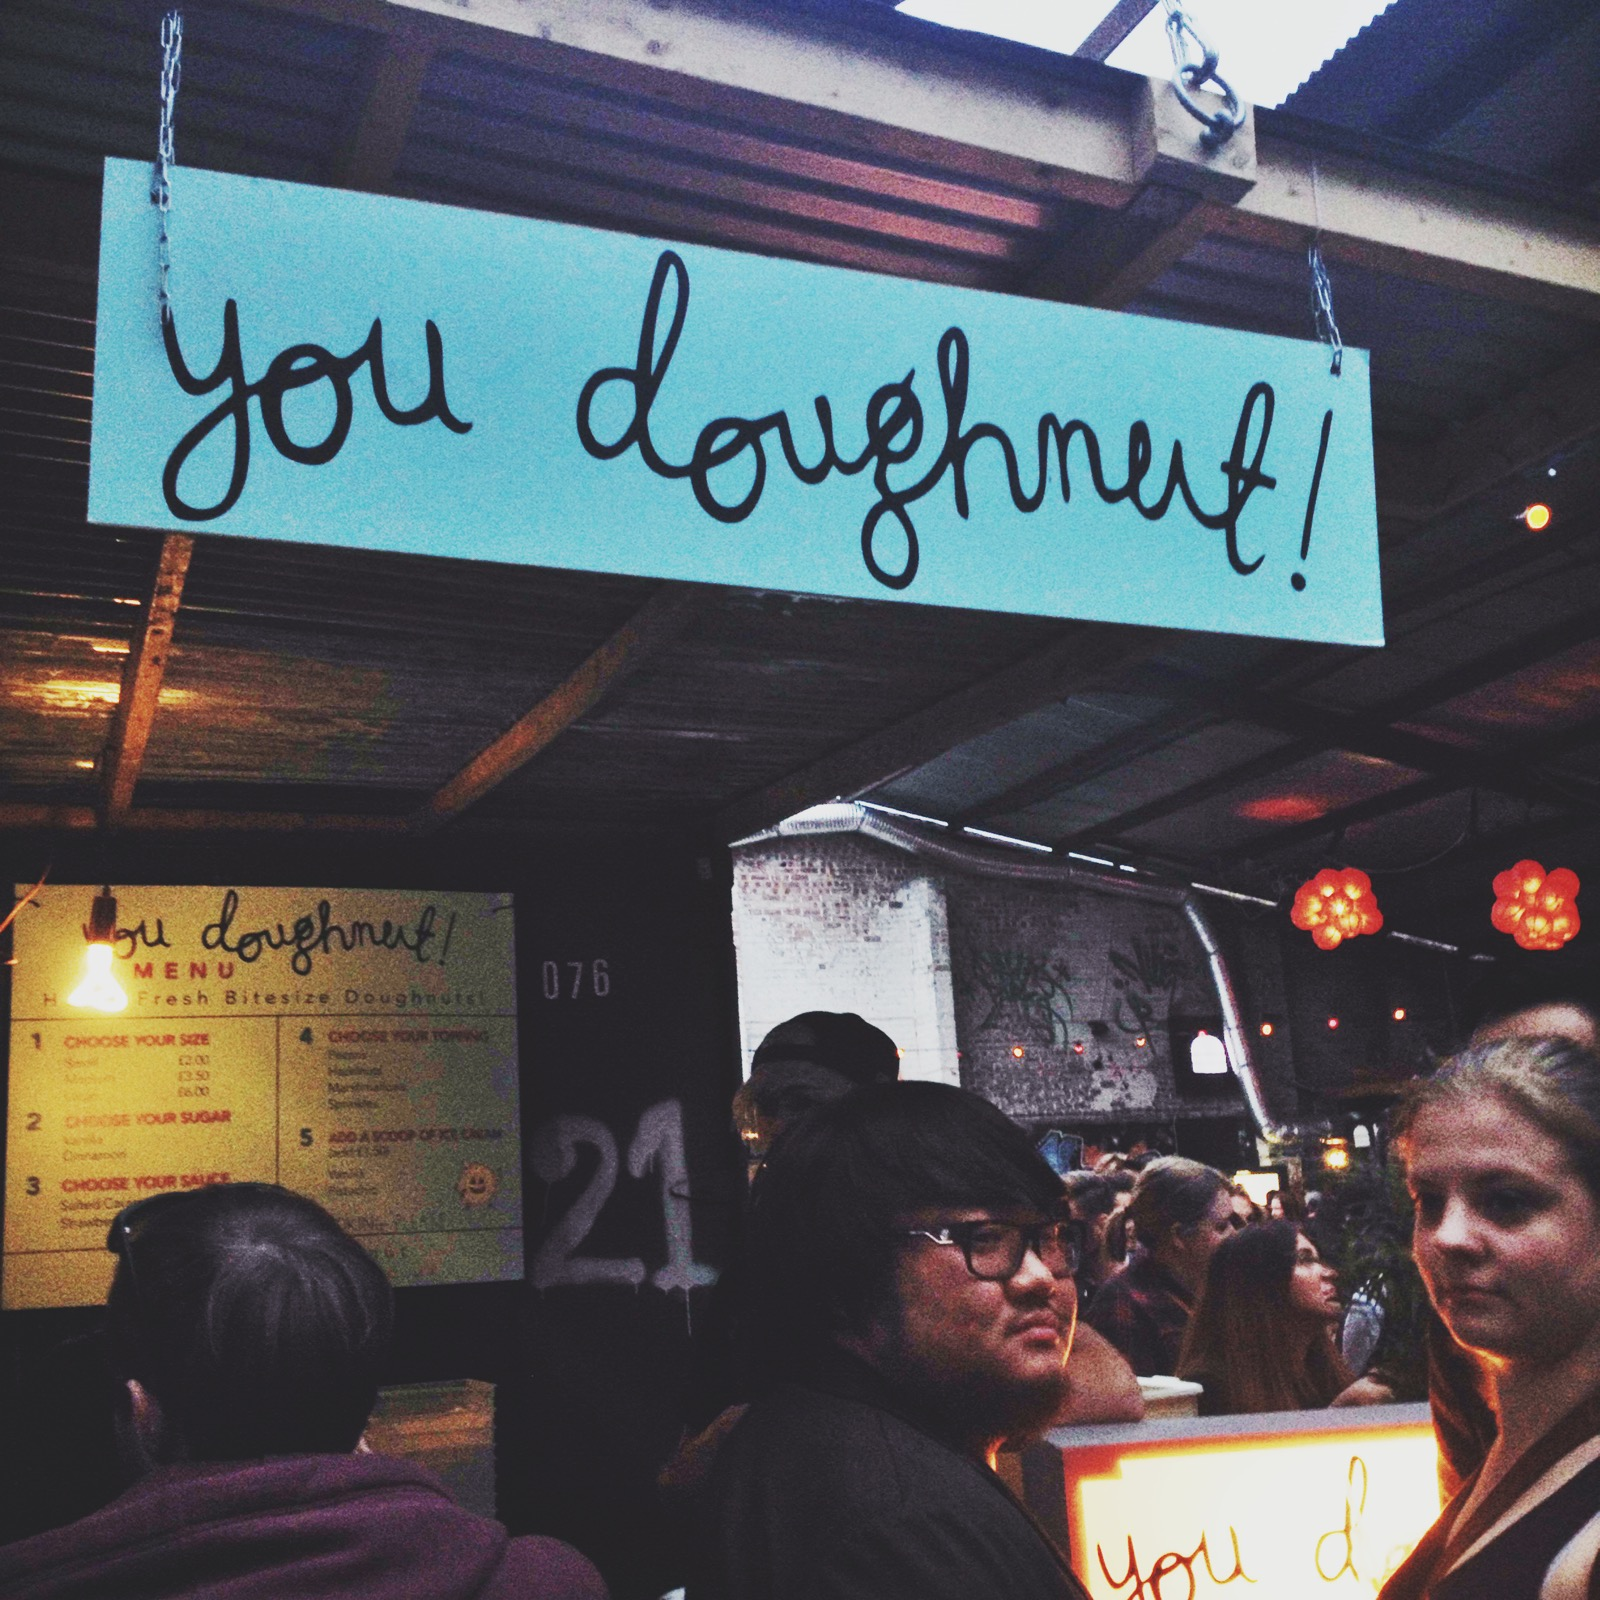 And donuts from  You Donuts fordessert of course!